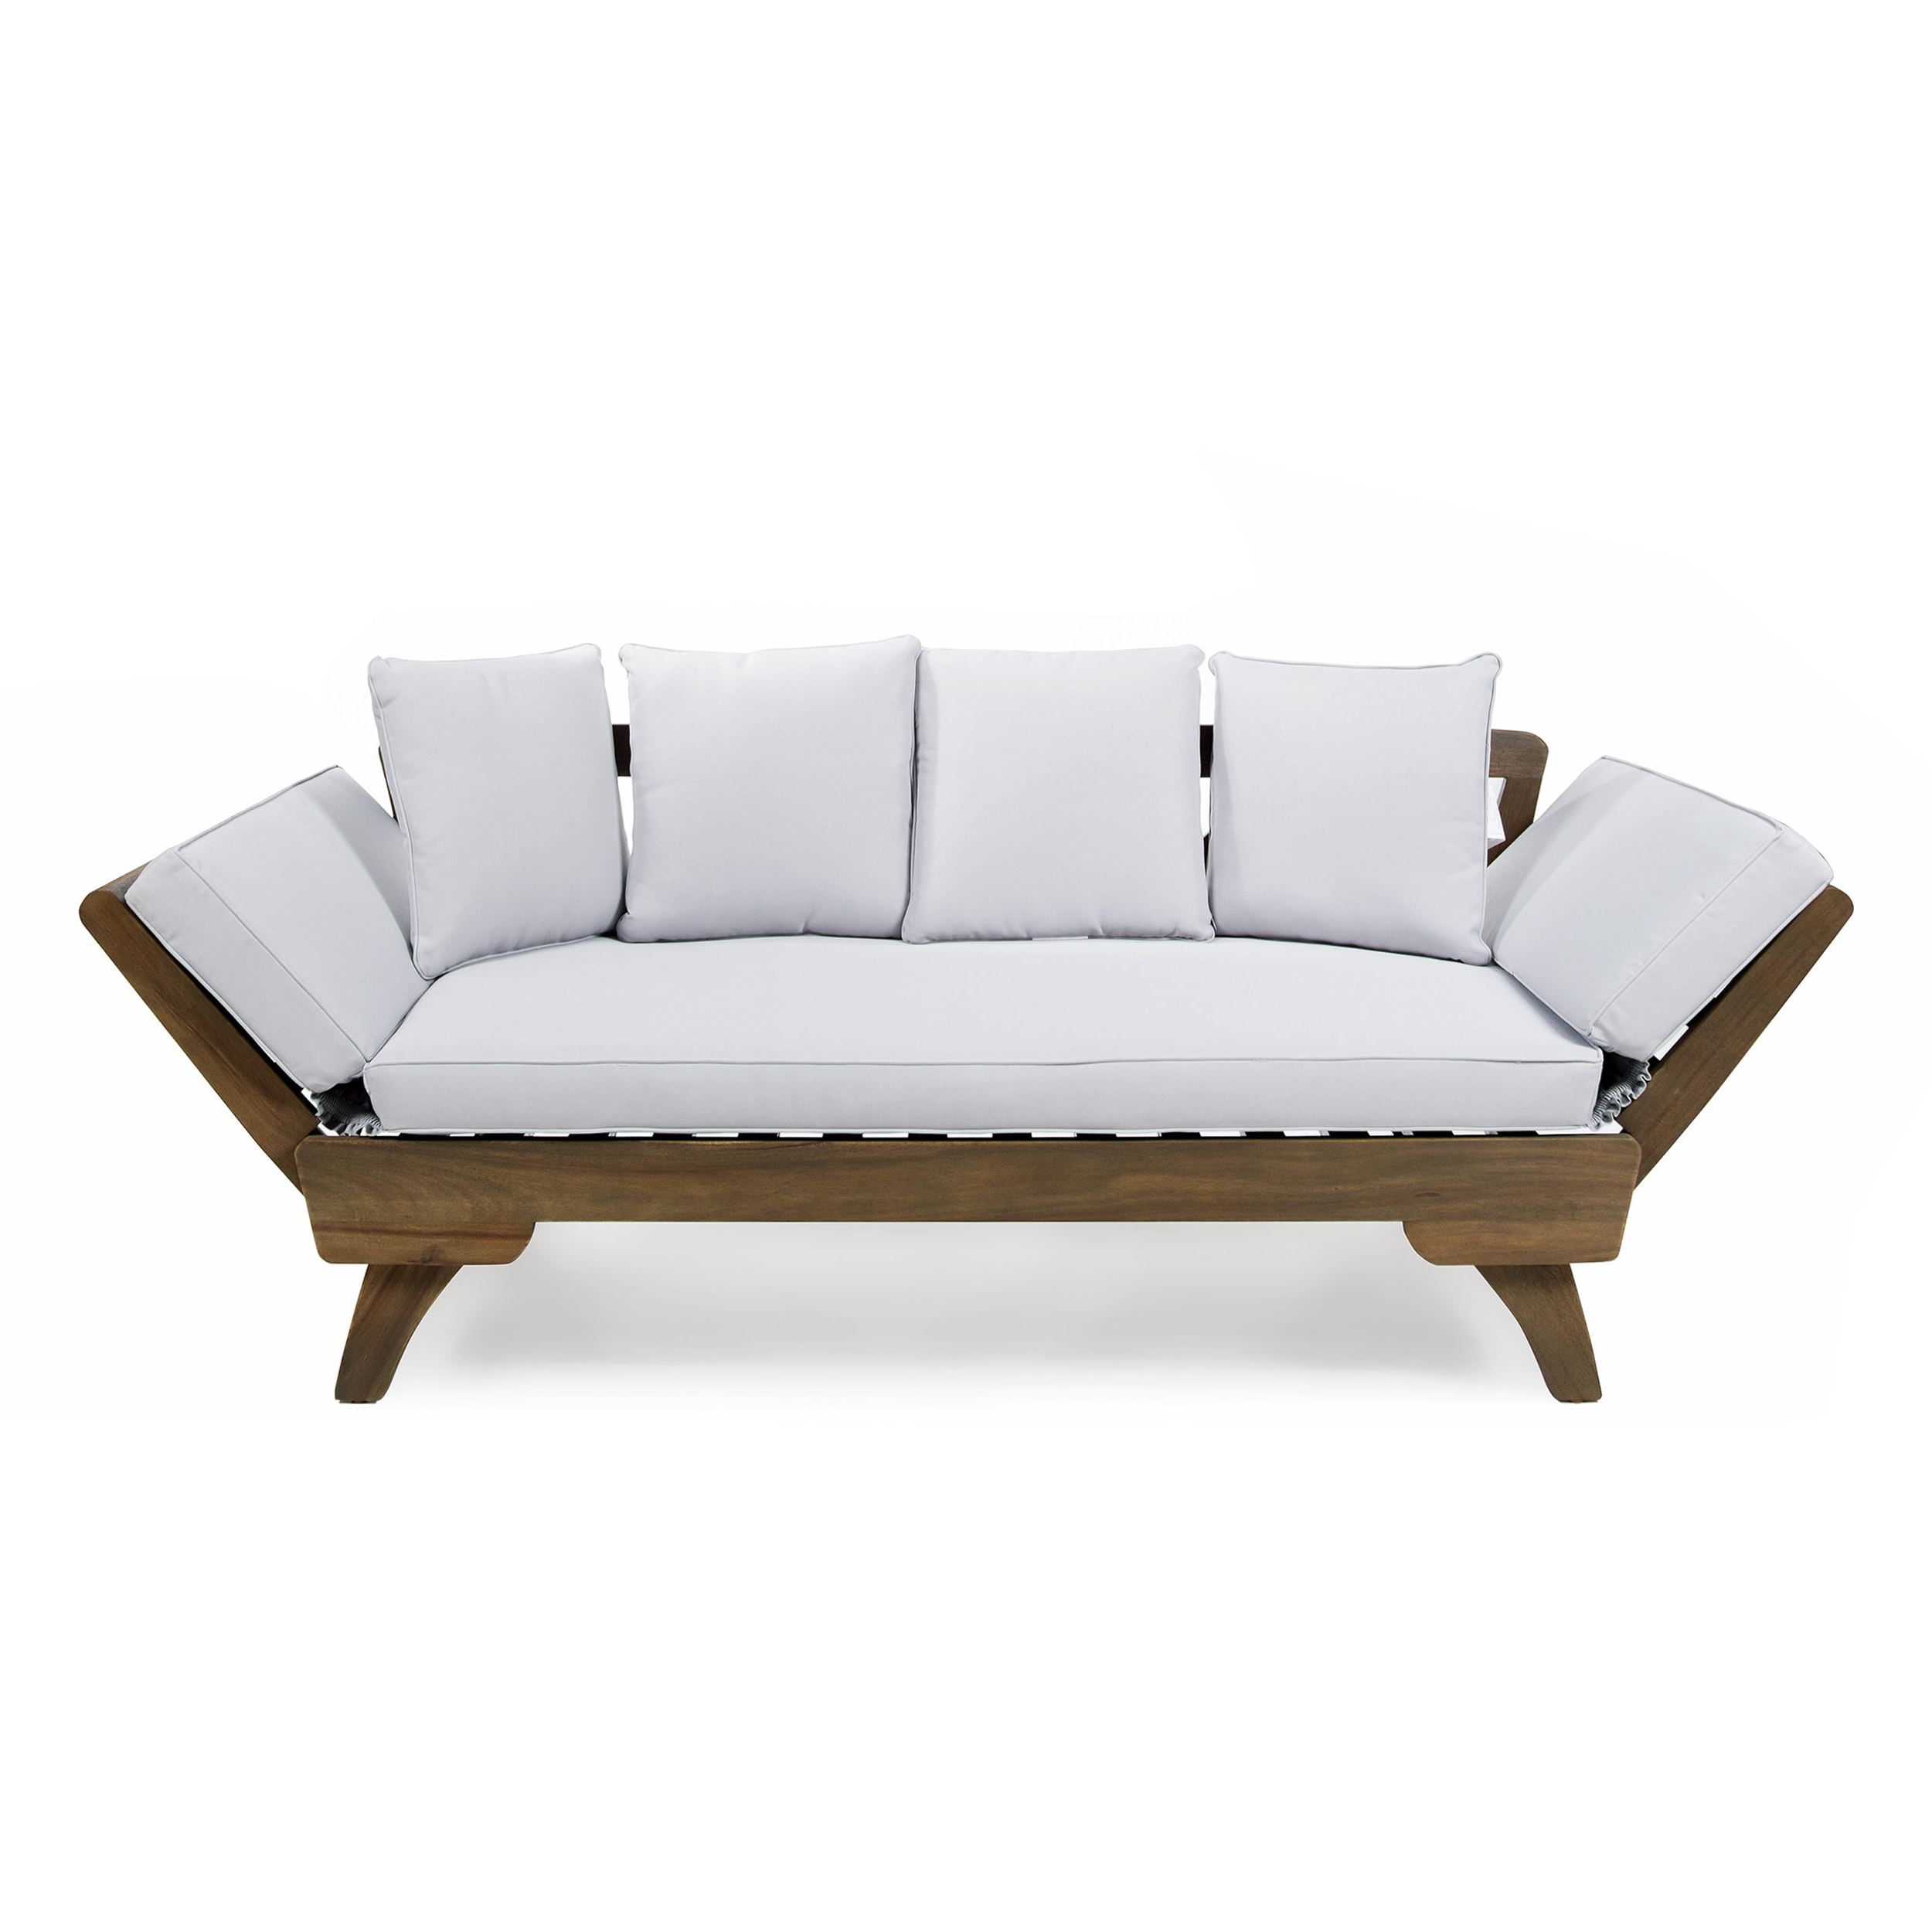 Allmodern Regarding Hatley Patio Daybeds With Cushions (View 2 of 20)